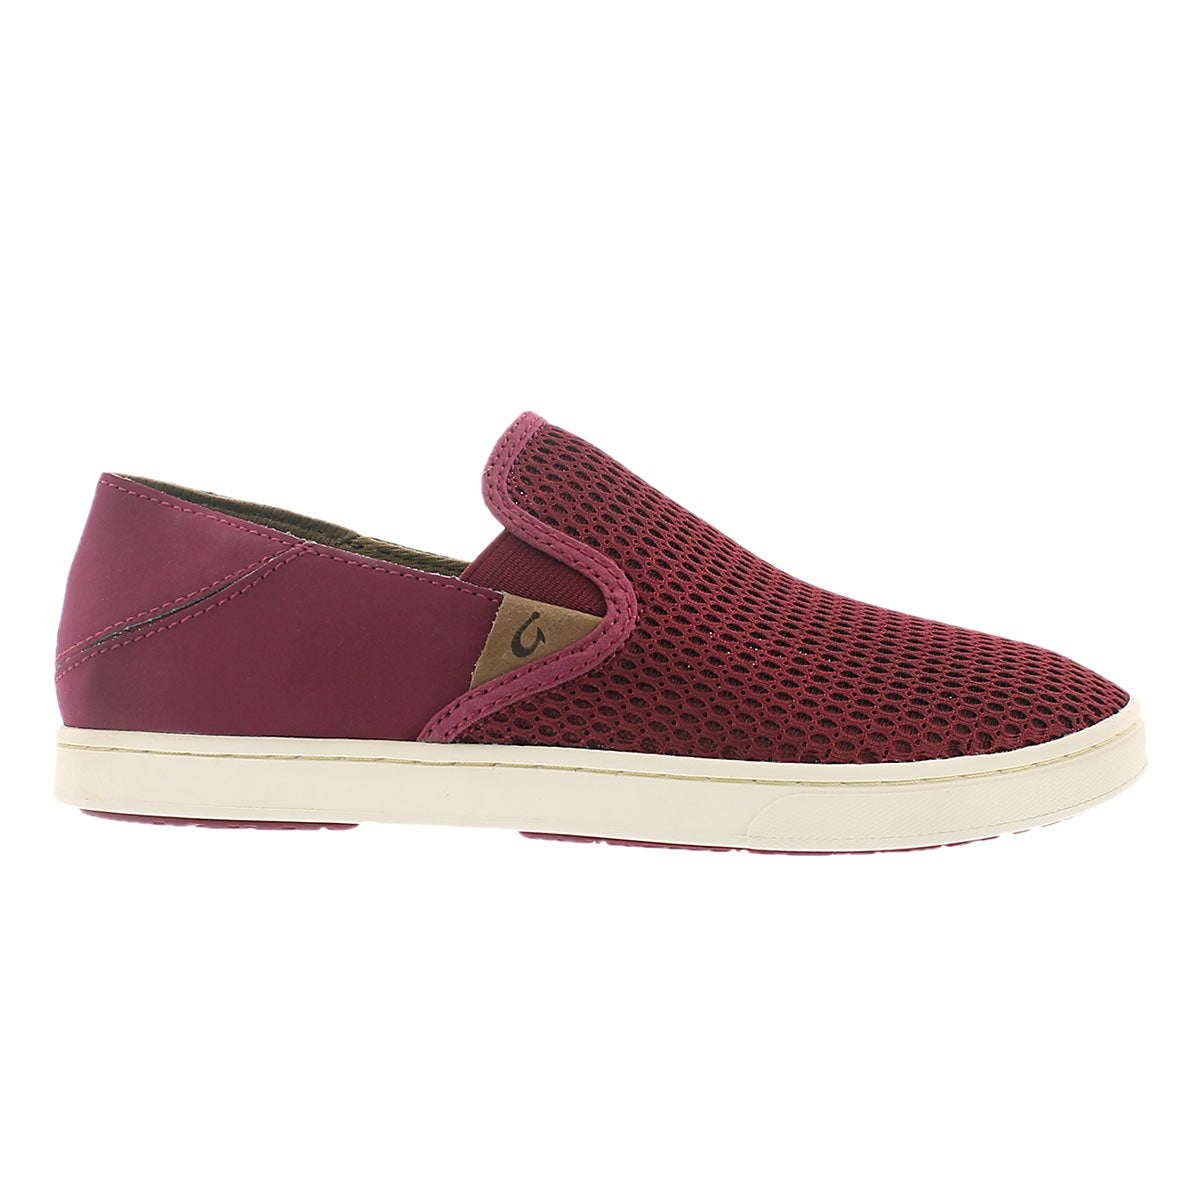 Lds Pehuea pokeberry slip on casual shoe